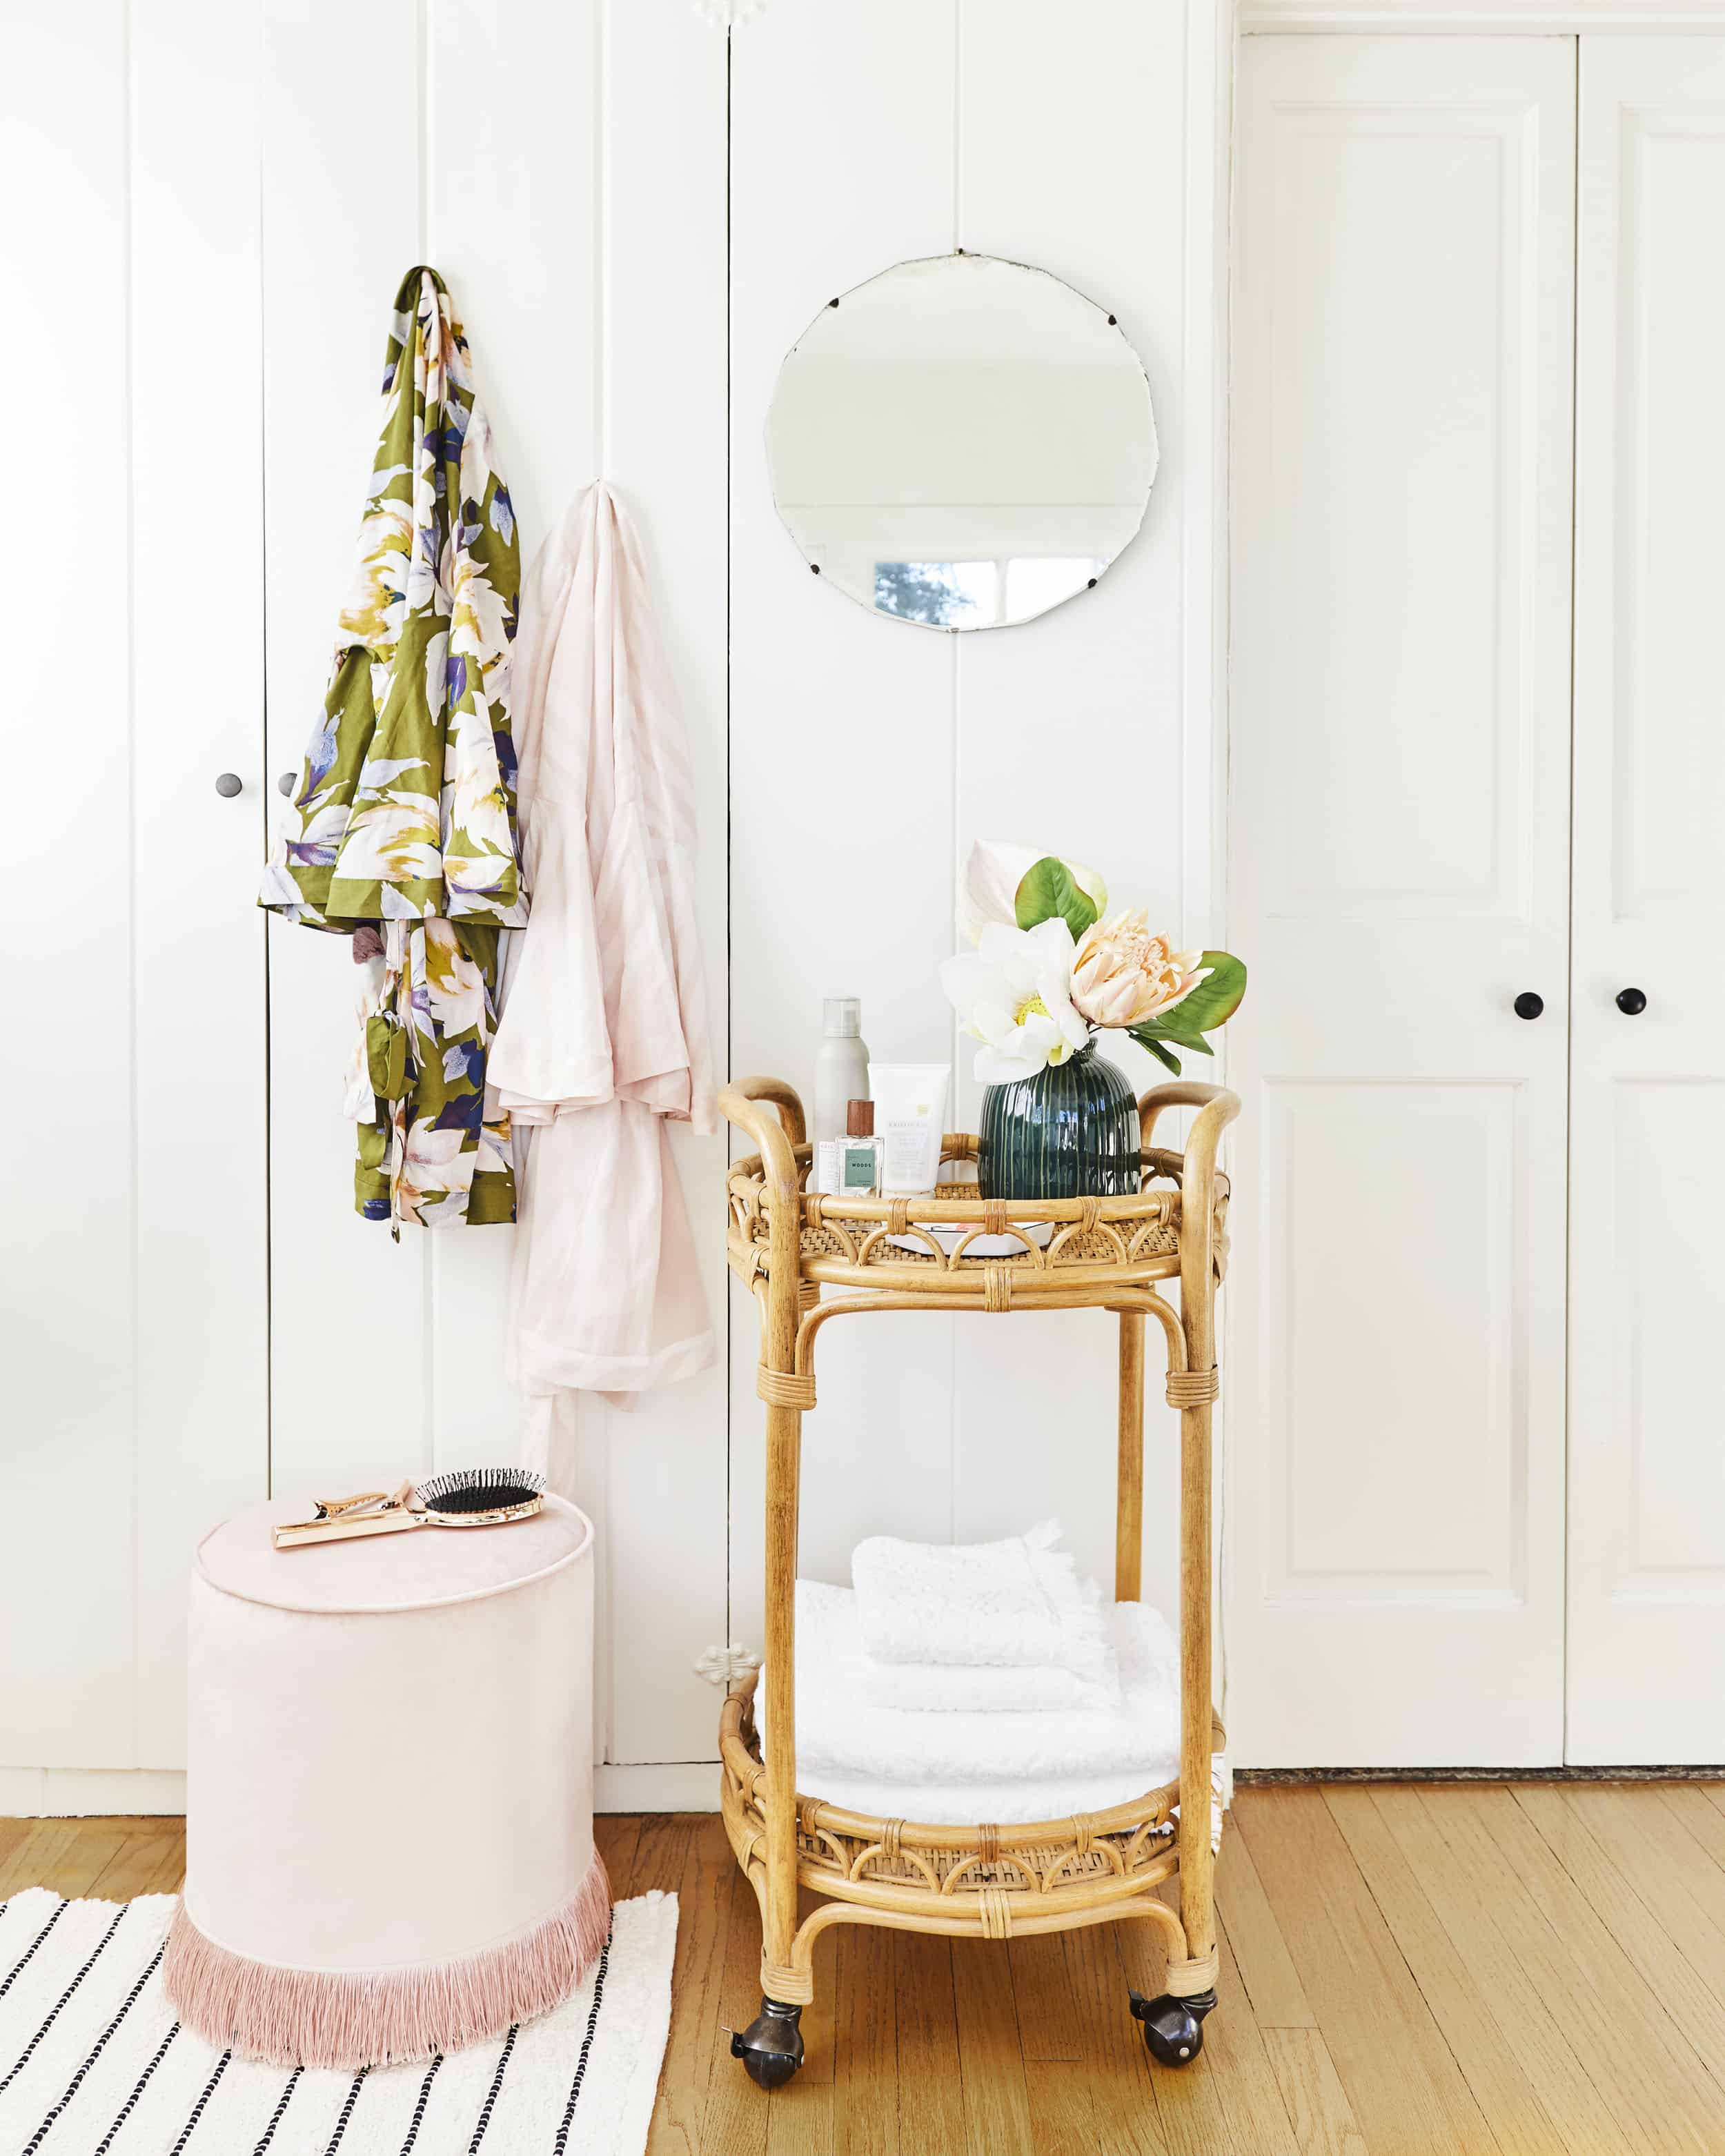 Target Opalhouse Spring 2019 Emily Henderson Lores26